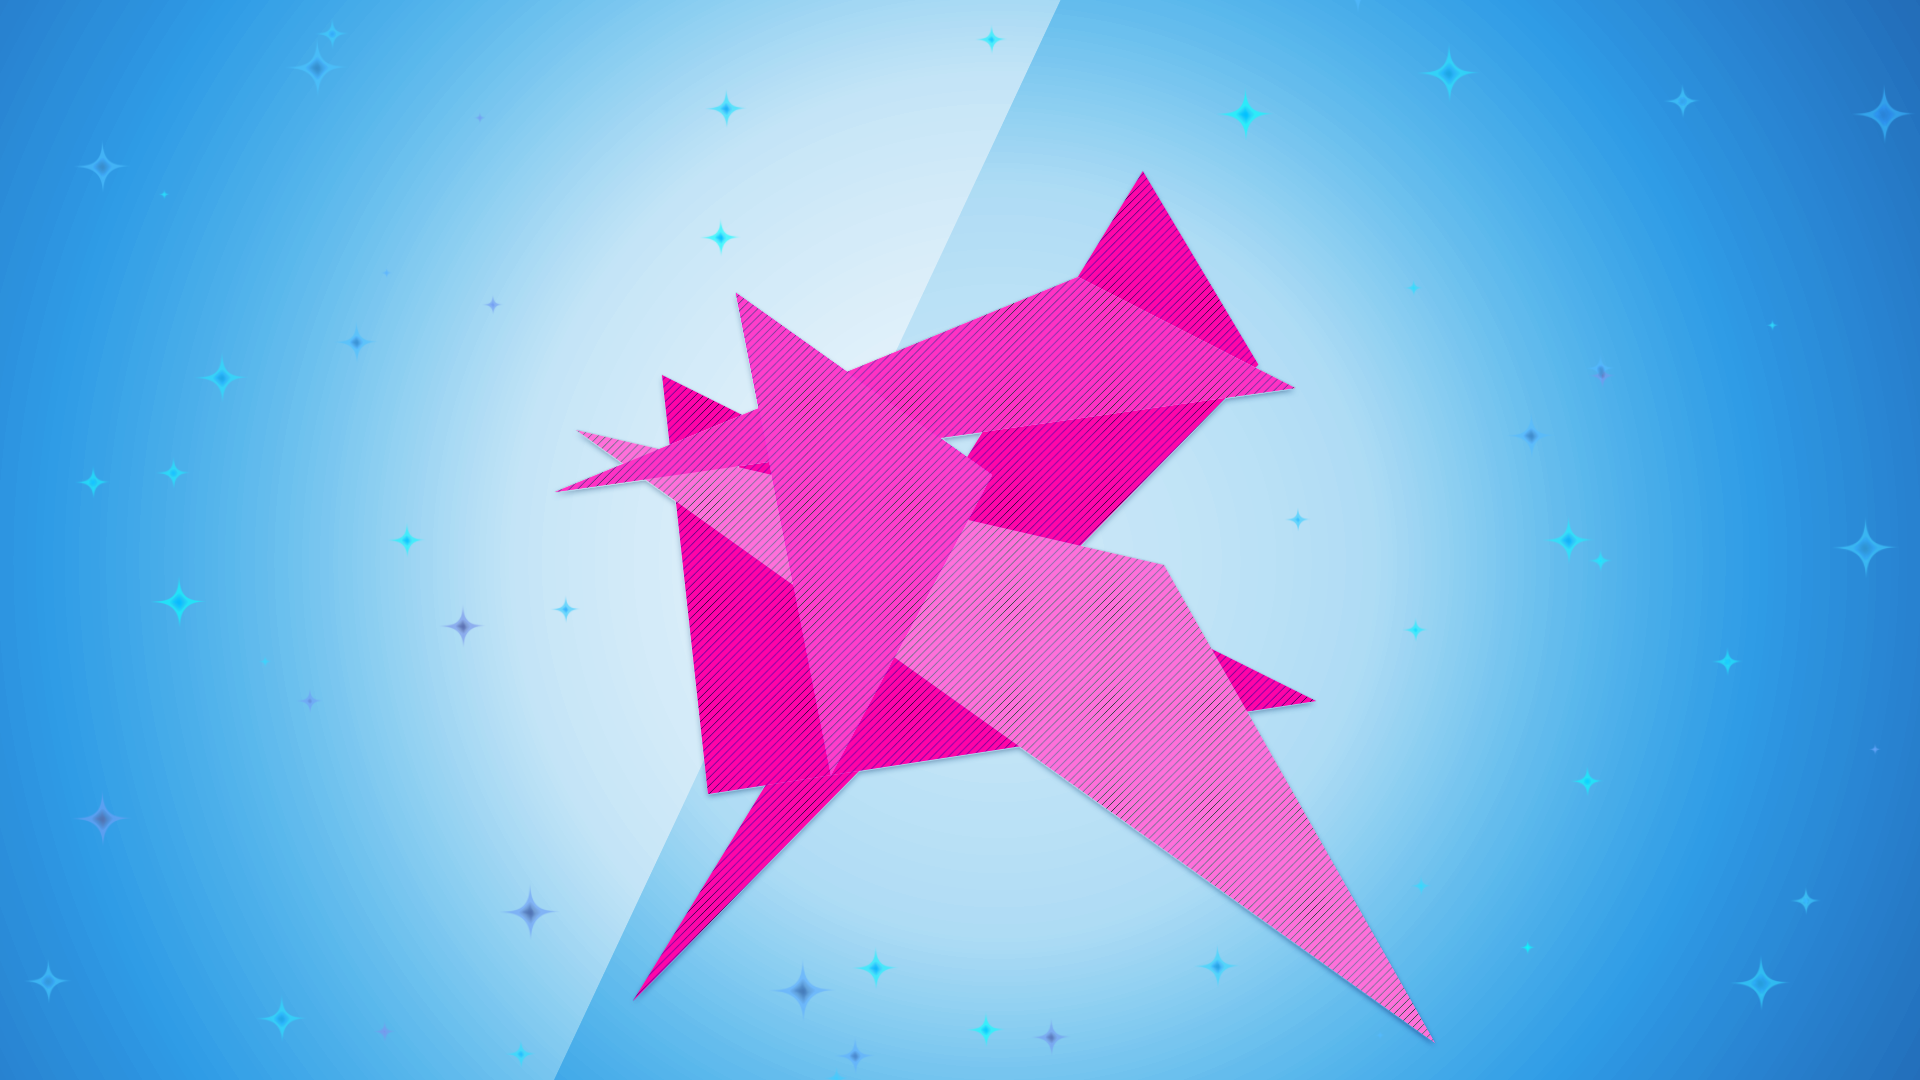 Pink Star PNG HD - 147227